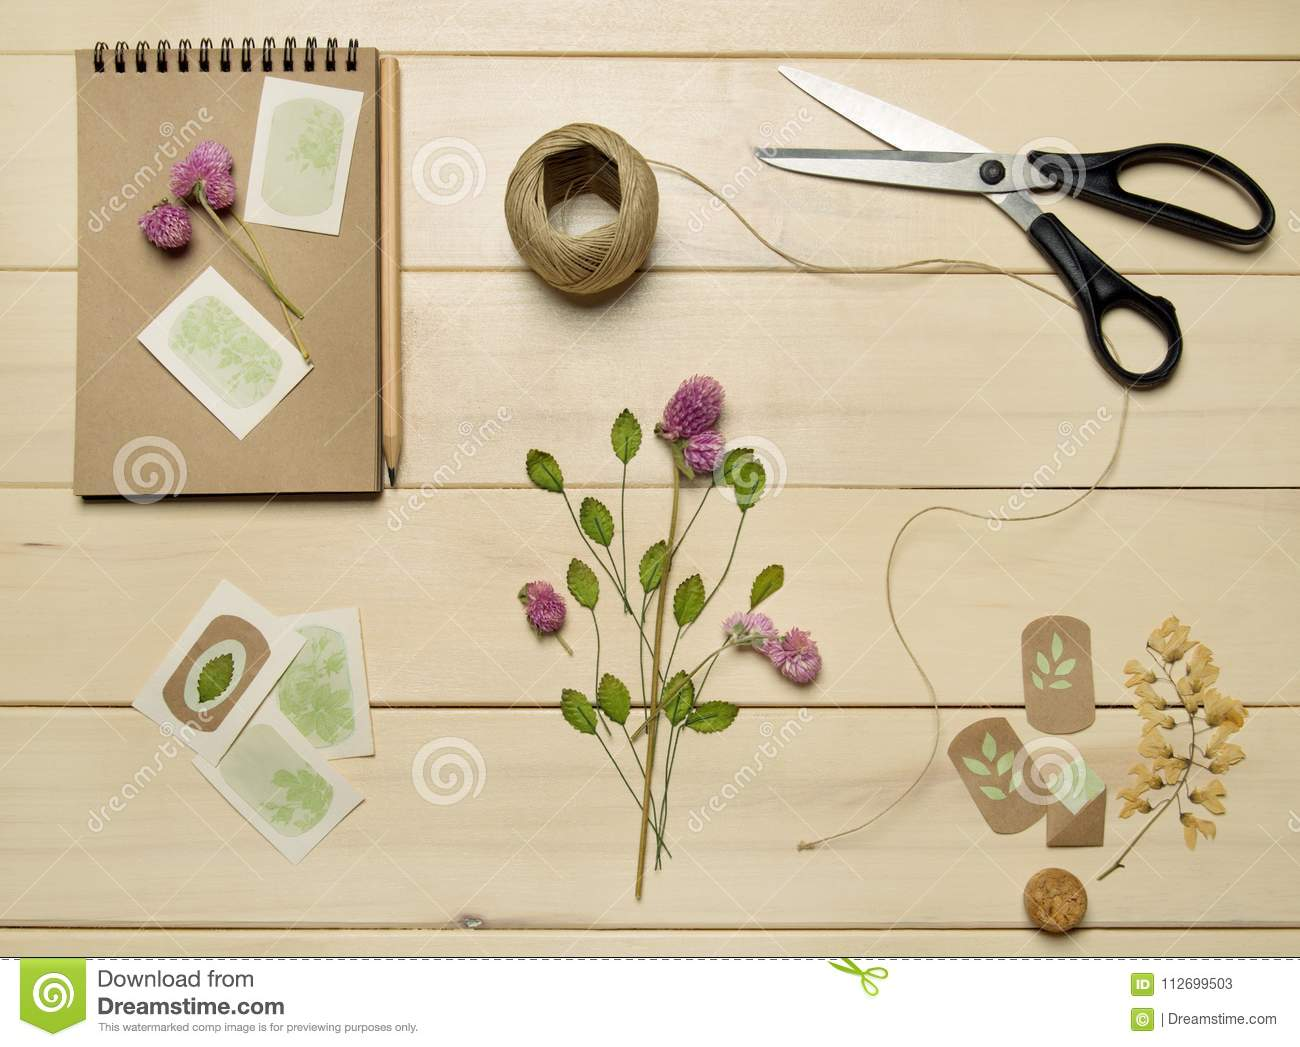 Craft Paper Sketch Book With Flowers Stock Image Image Of Pressed